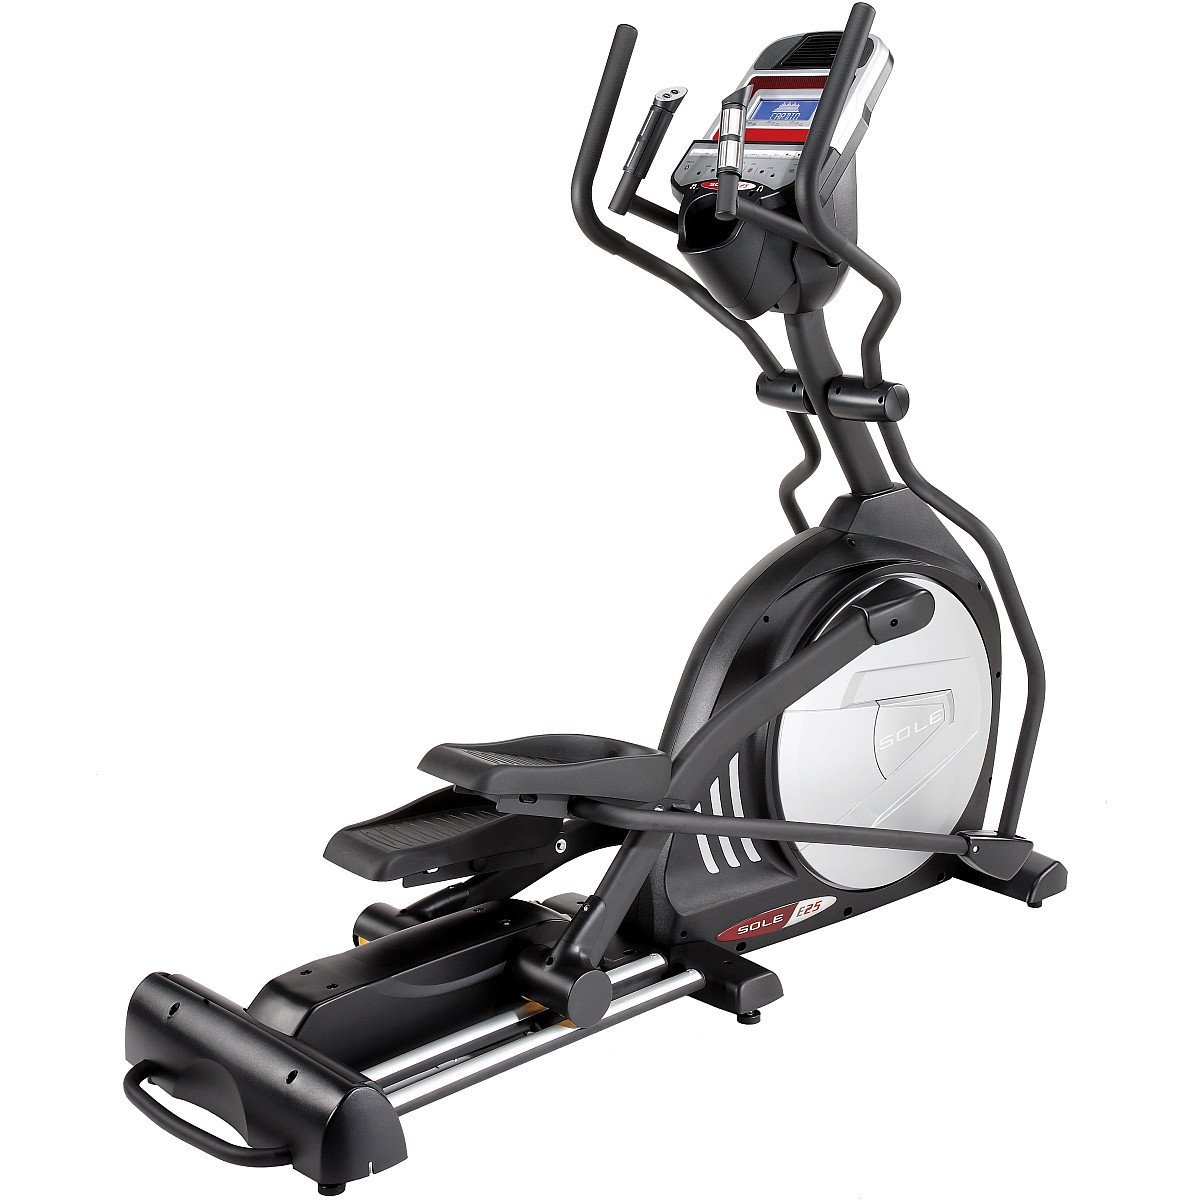 Horizon Fitness Treadmill Power Cord: Sole E25 Elliptical Review- Find Out How It Performs In